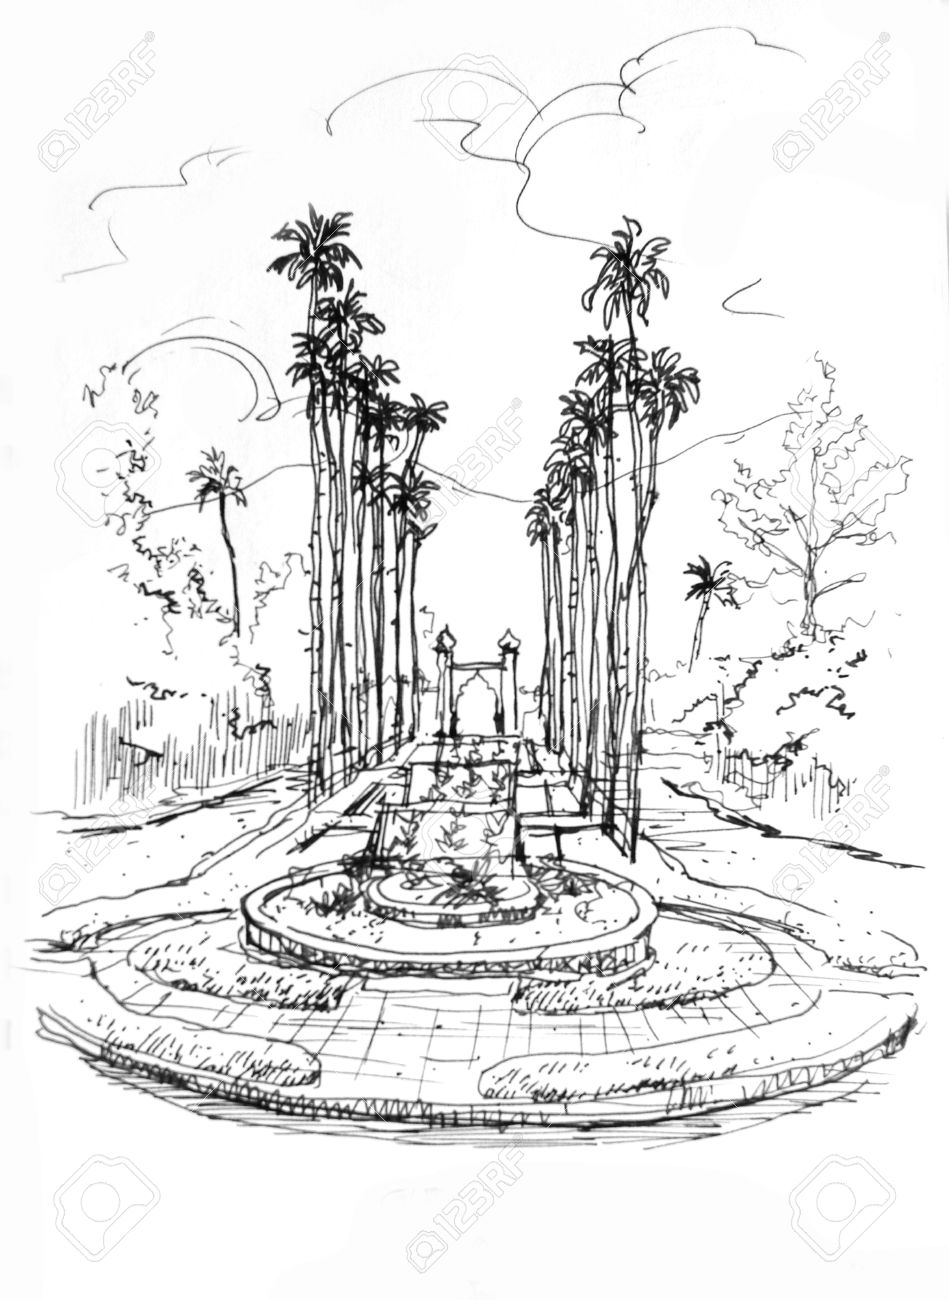 Fountain entrance with palm tree pencil drawing